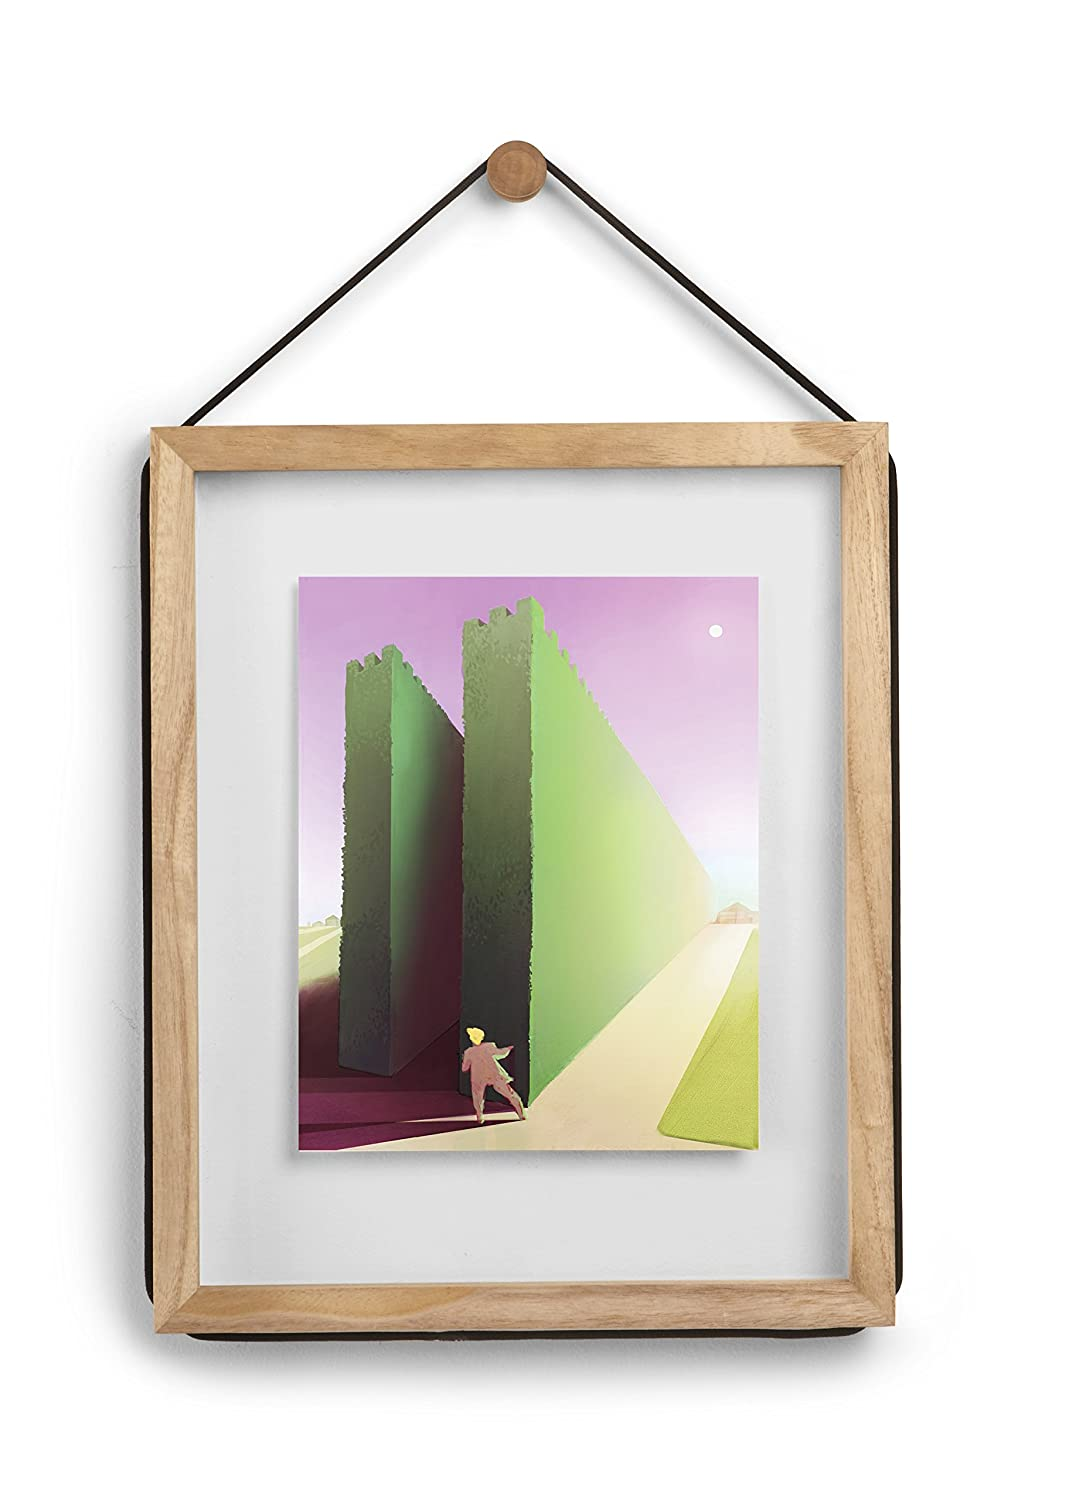 Amazon umbra corda photo display 11 by 14 inch8 by 10 inch amazon umbra corda photo display 11 by 14 inch8 by 10 inch float natural jeuxipadfo Gallery